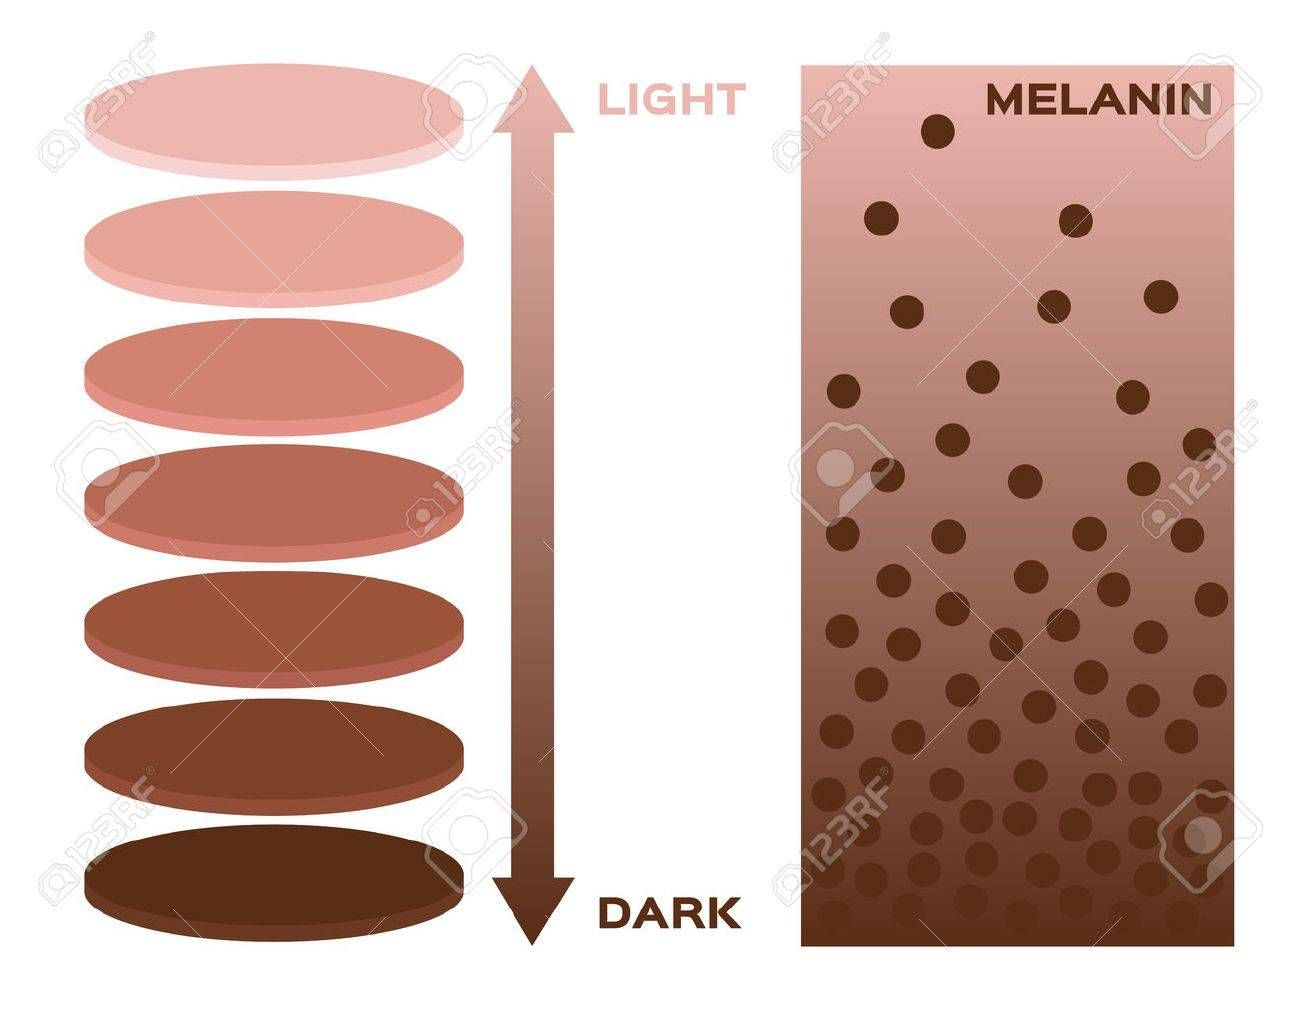 Skin Color And Melanin Index Infographic Vector 3 Chart Dark